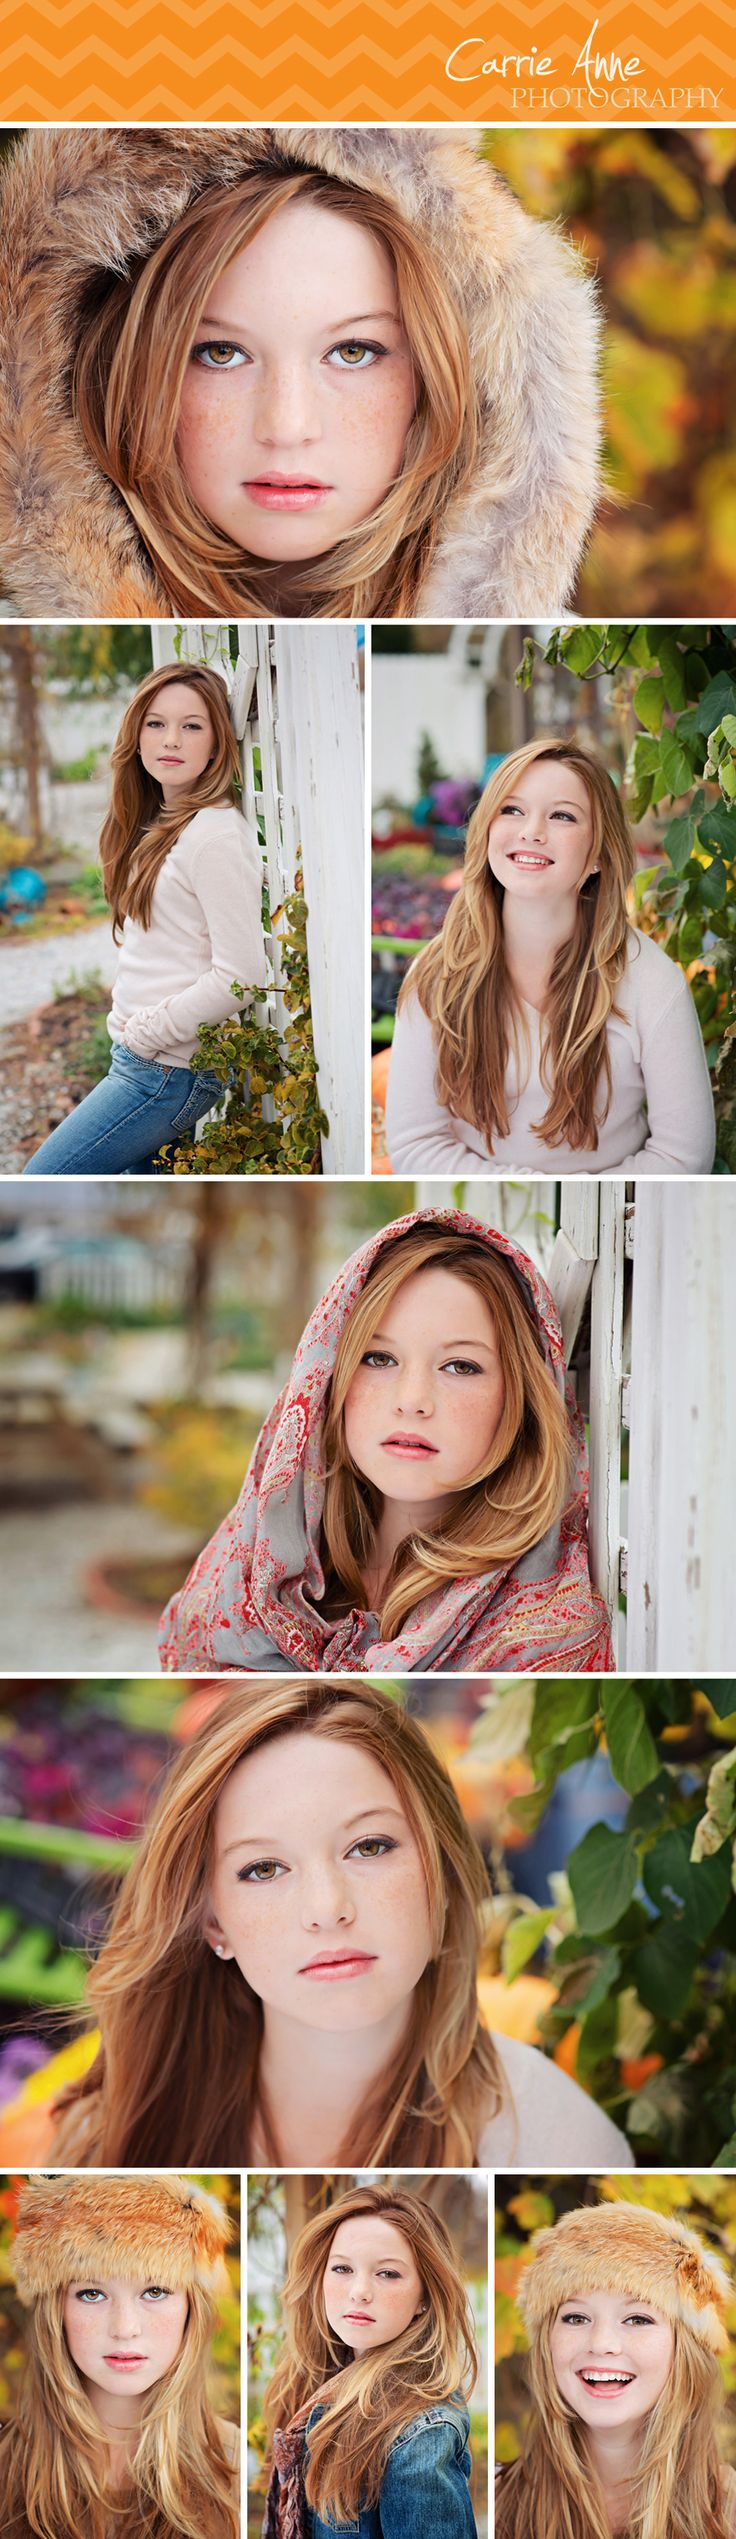 Teen glamour girls photography